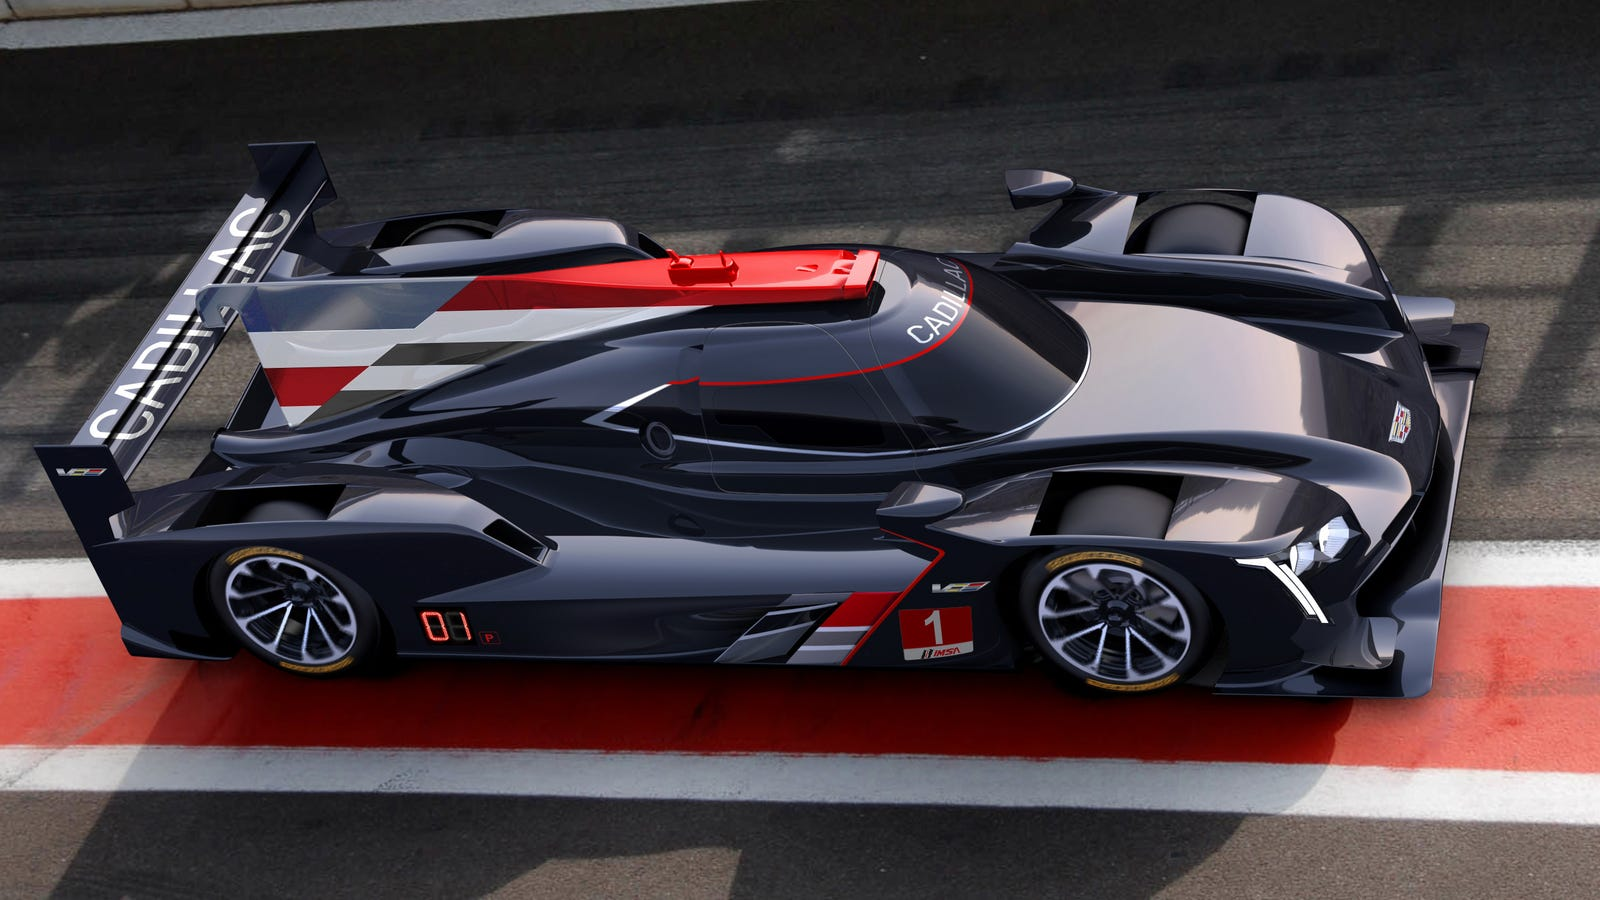 This High Tech Race Car Is Not Your Grandma S Cadillac